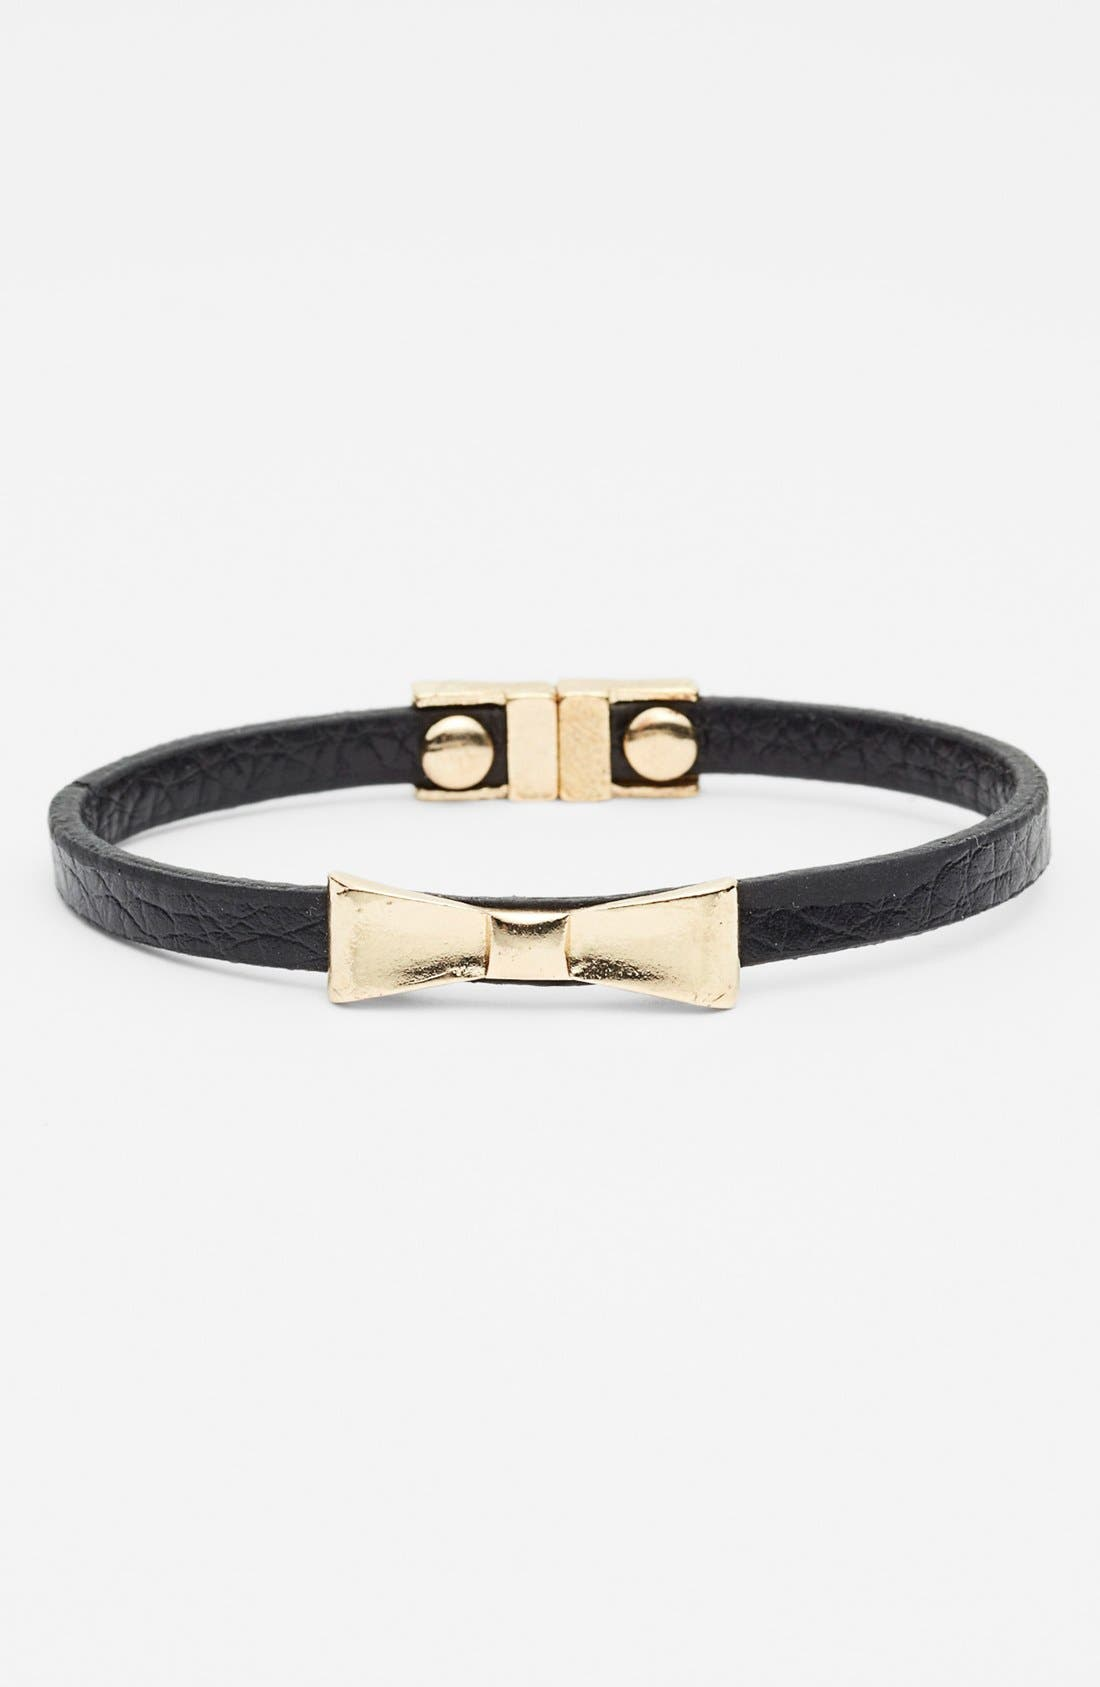 Alternate Image 1 Selected - Carole Bow Faux Leather Bracelet (Juniors)